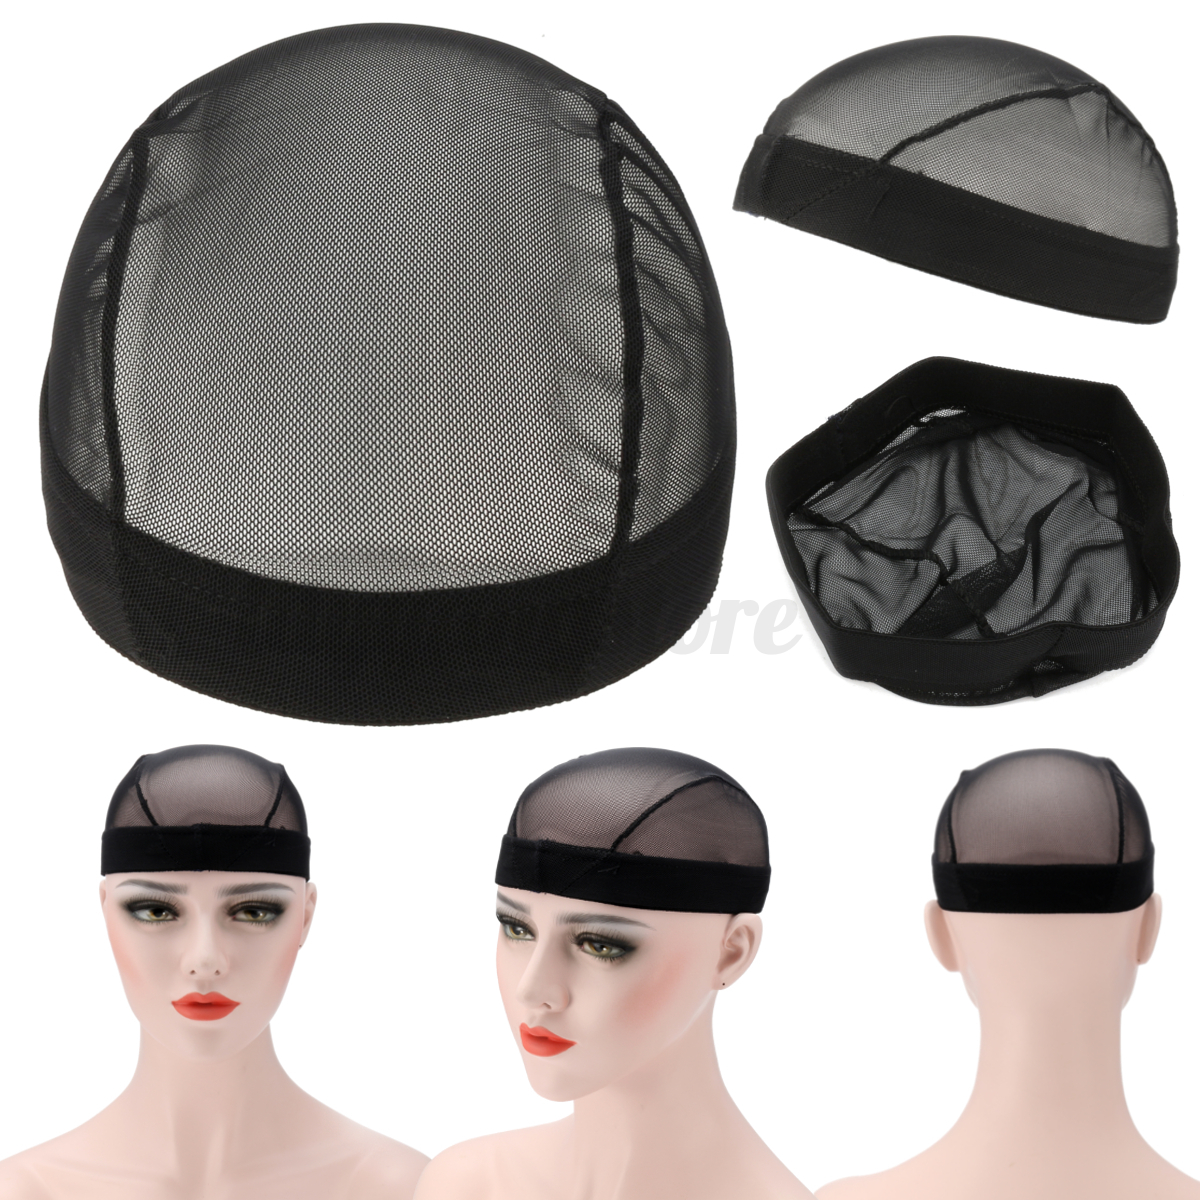 Mesh Wig Cap For Wig Making Adjustable Weaving Wig Caps